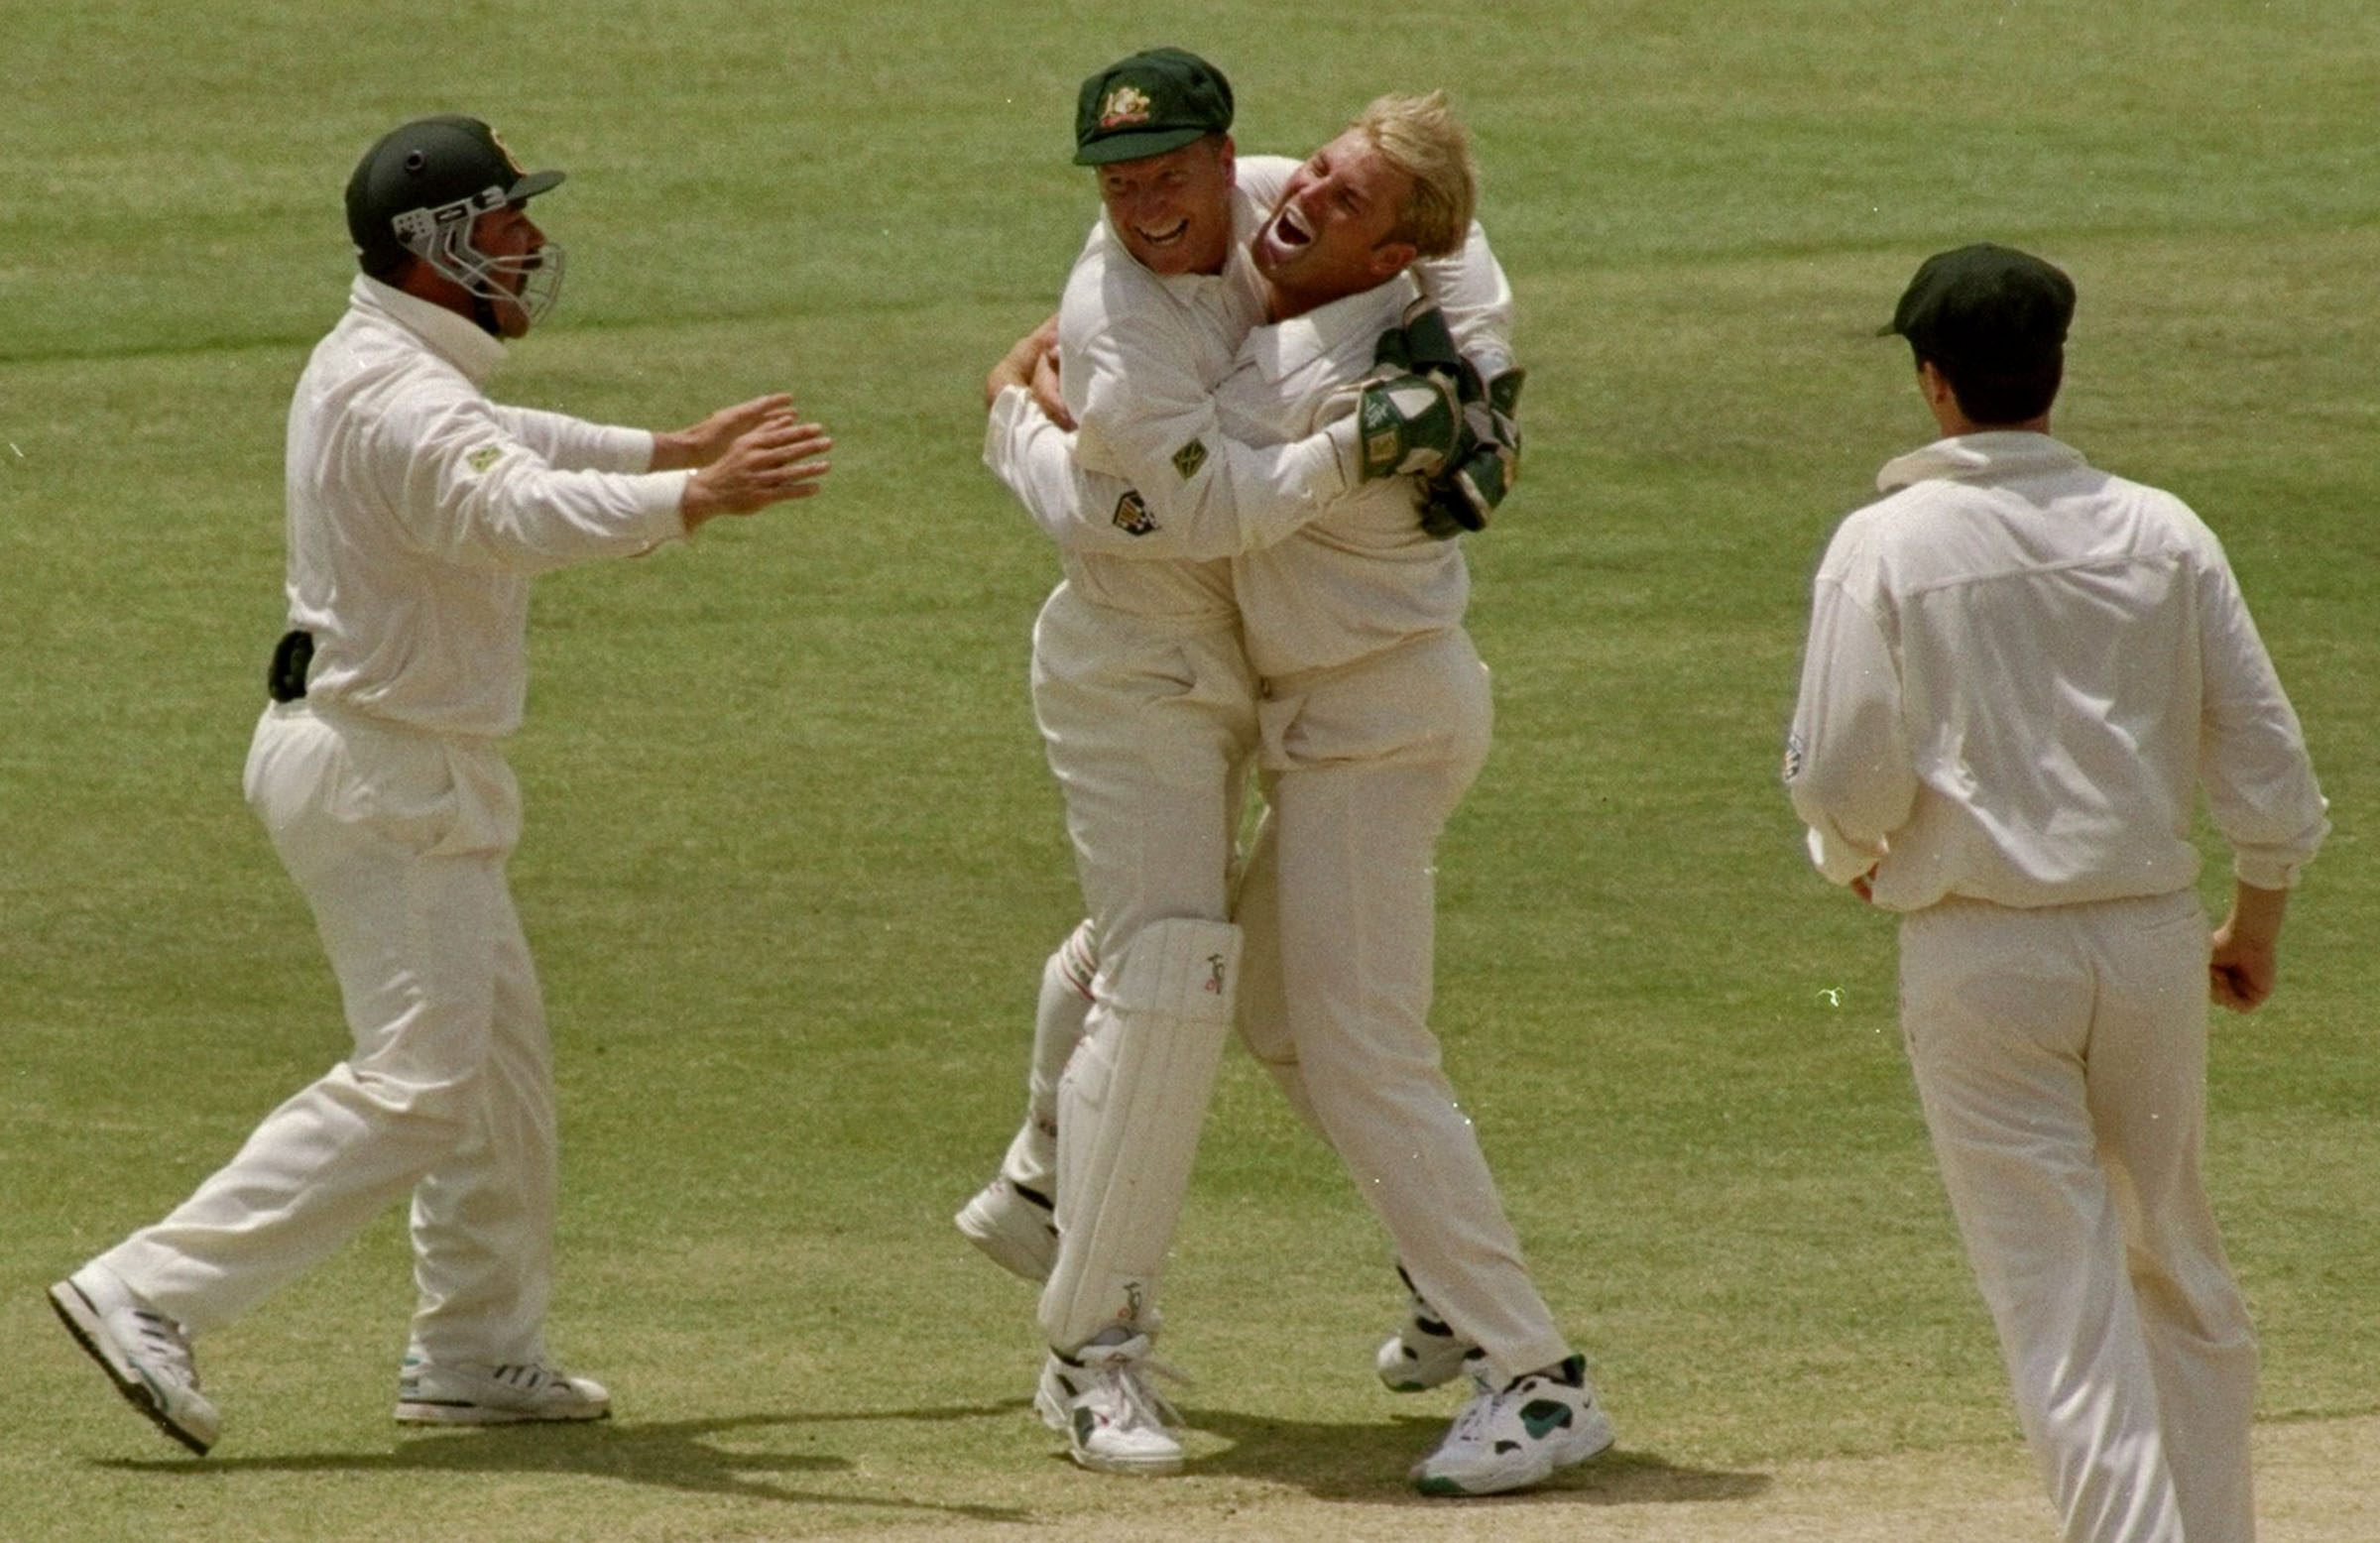 The Healy-Warne combination was key to Australia's success // Getty